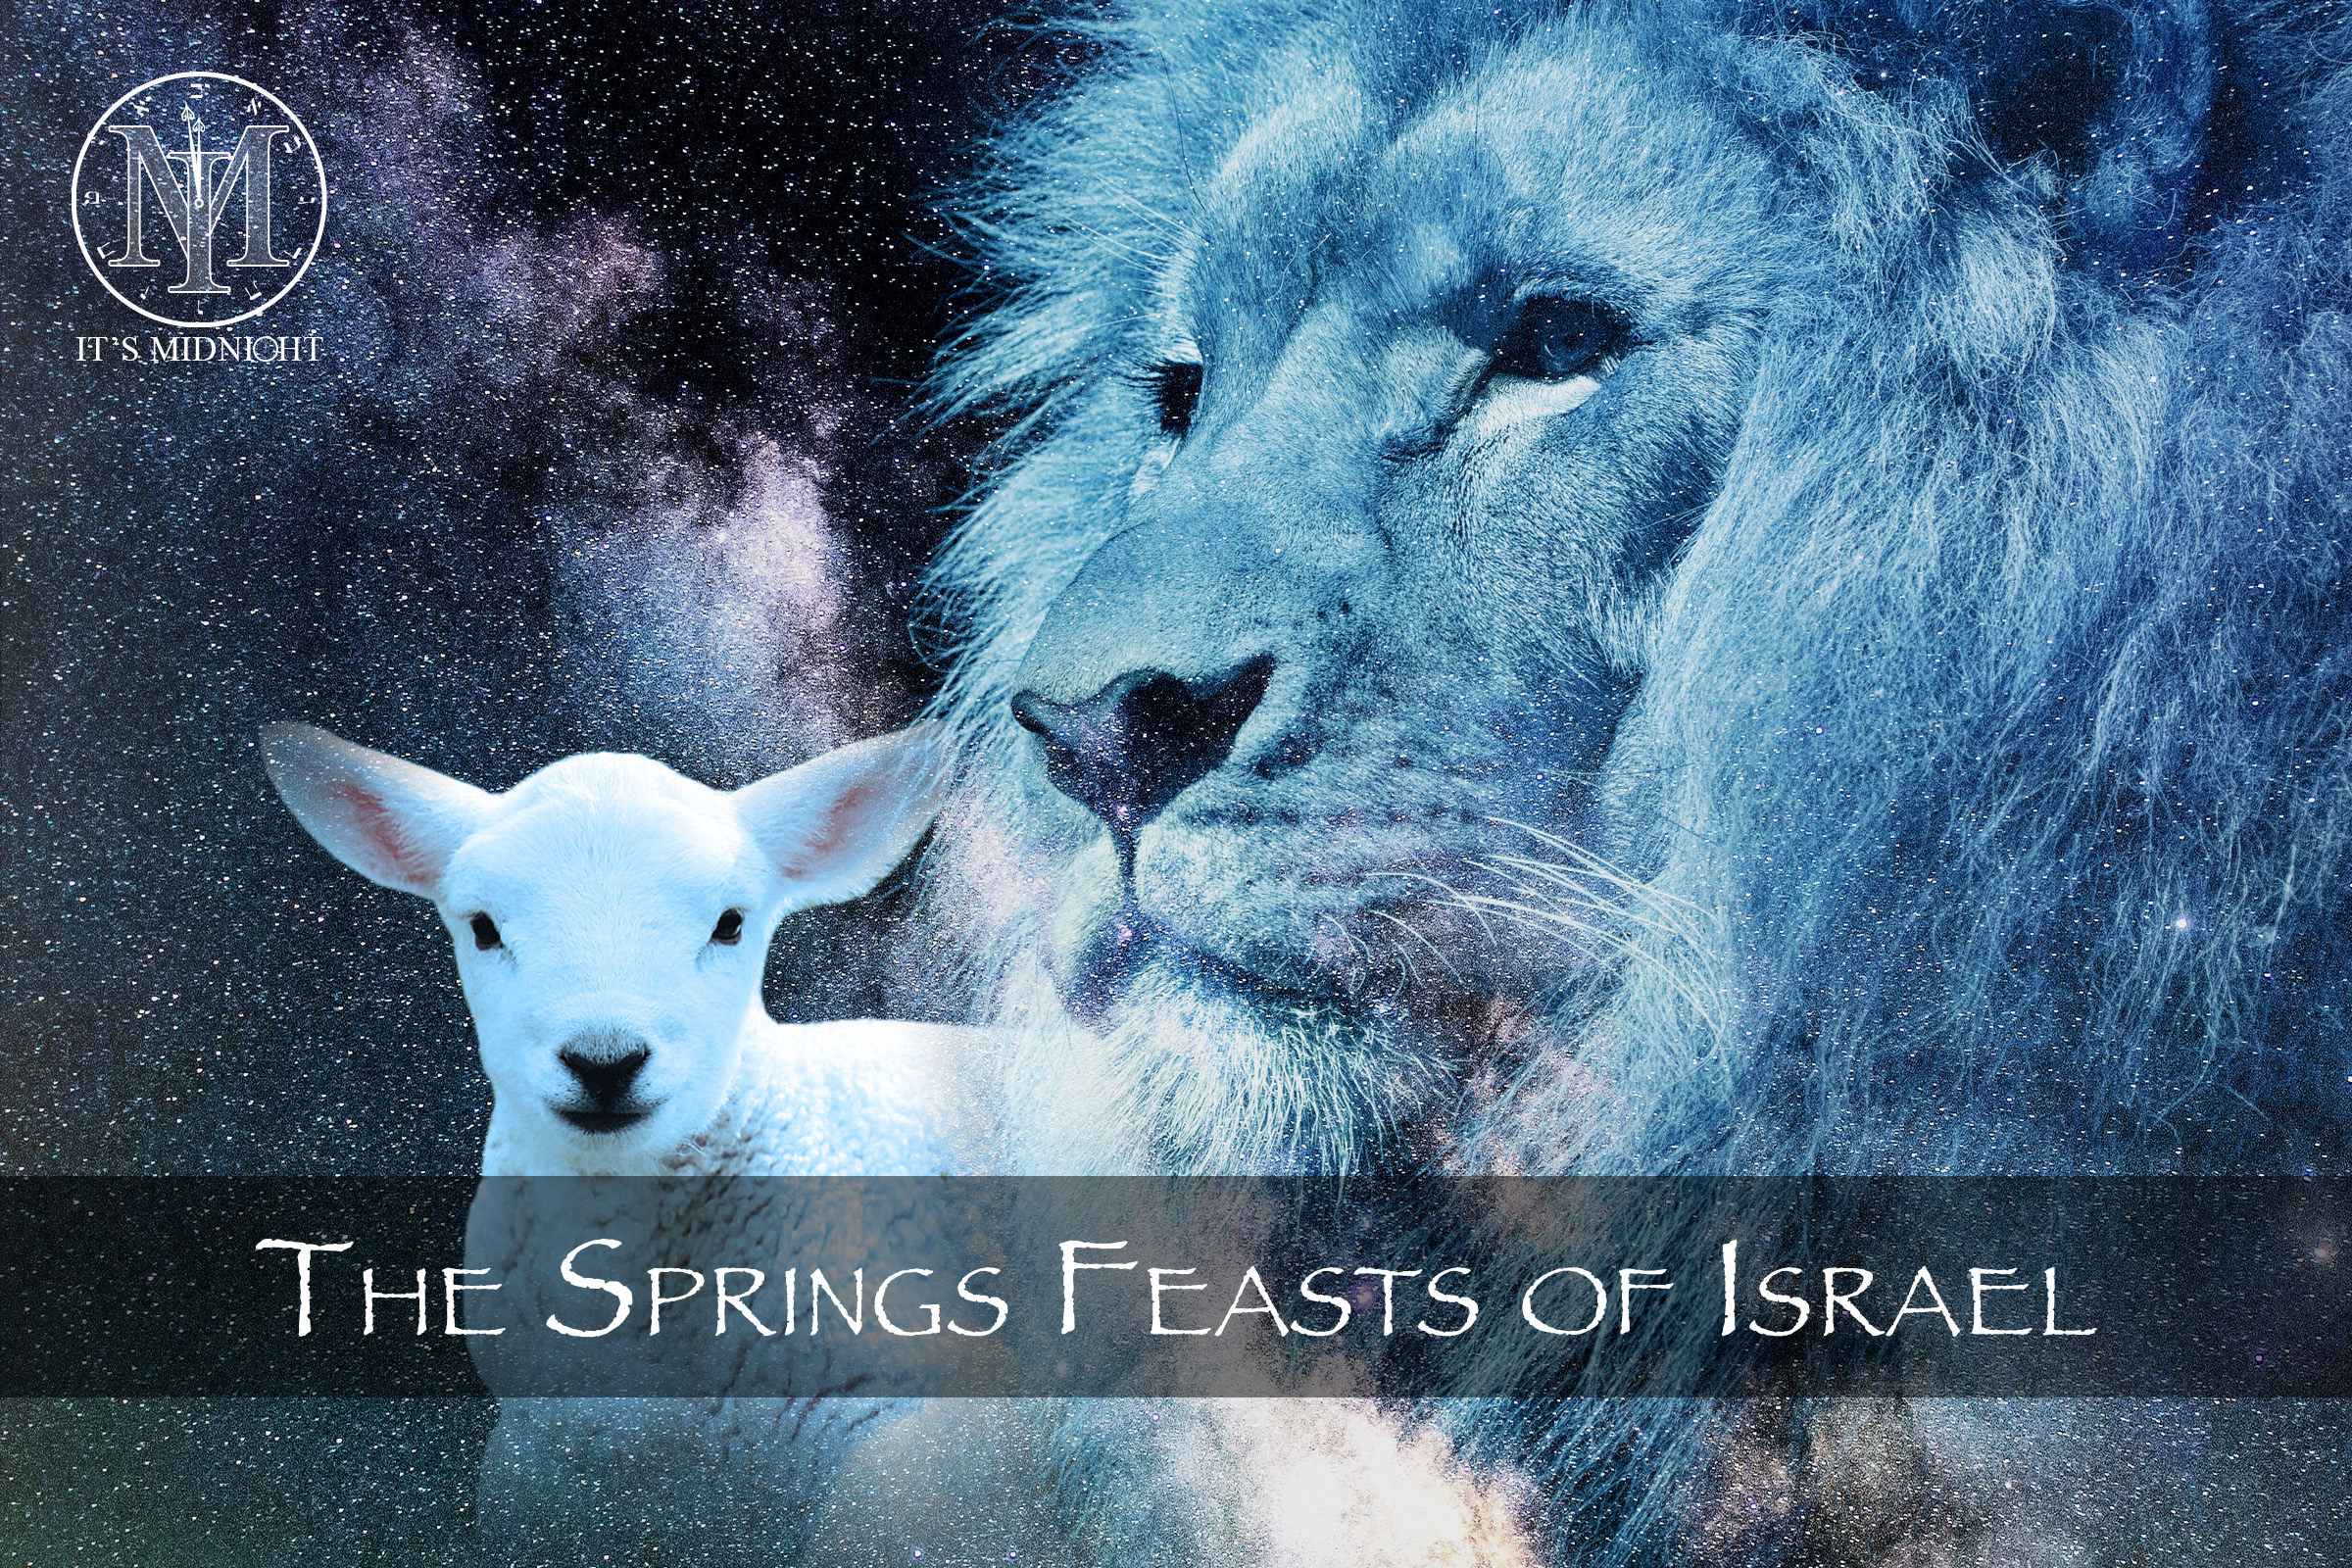 The Spring Feasts of Israel.jpg